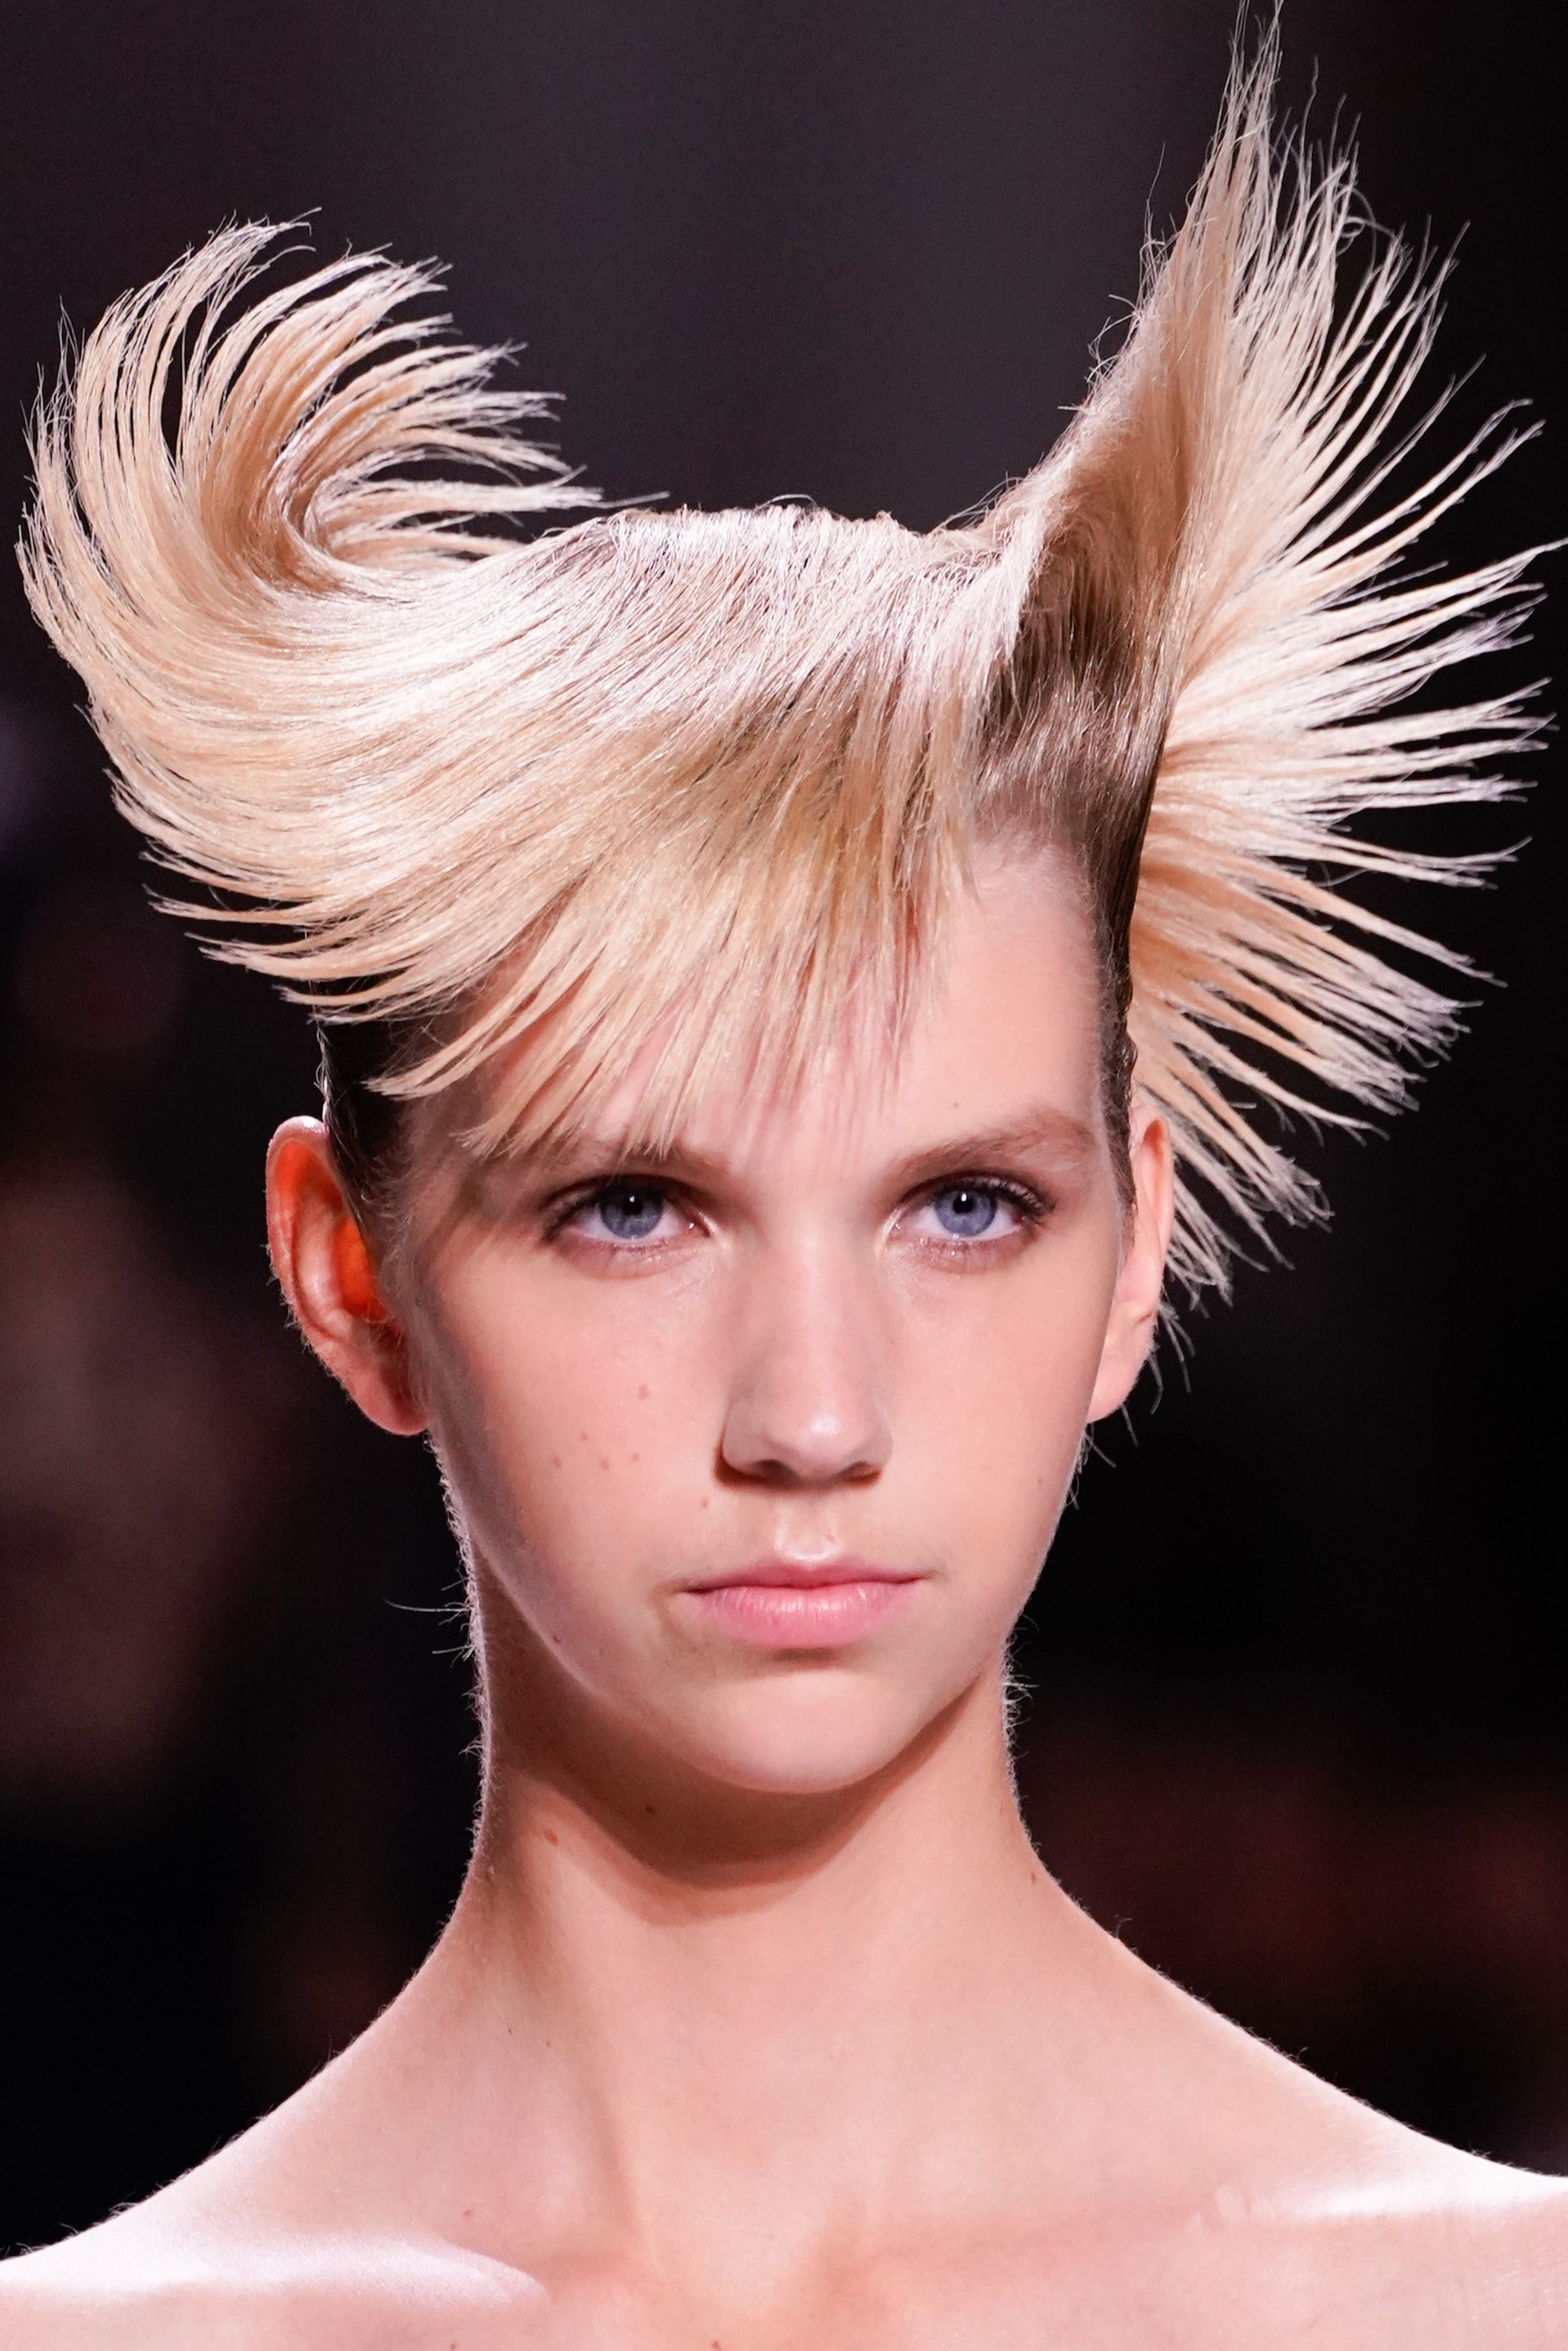 24 Scary Halloween Hairstyles Halloween Hair Ideas From The Runway